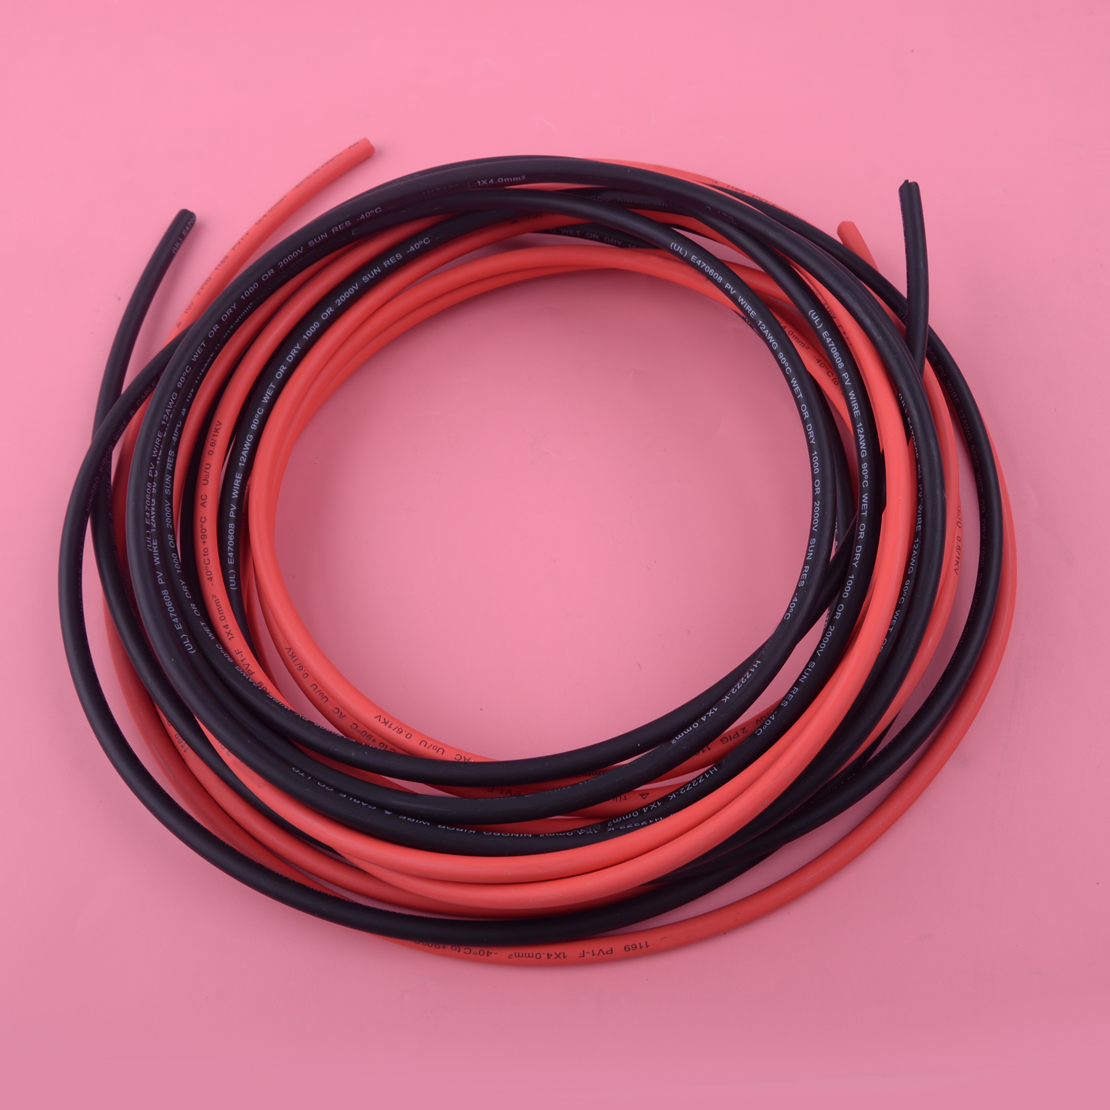 LETAOSK 1 Pair High Quality Solar Panel Extension Cable Wire MC4 Connector 10 AWG 5m 10m 16.4ft 32.8ft